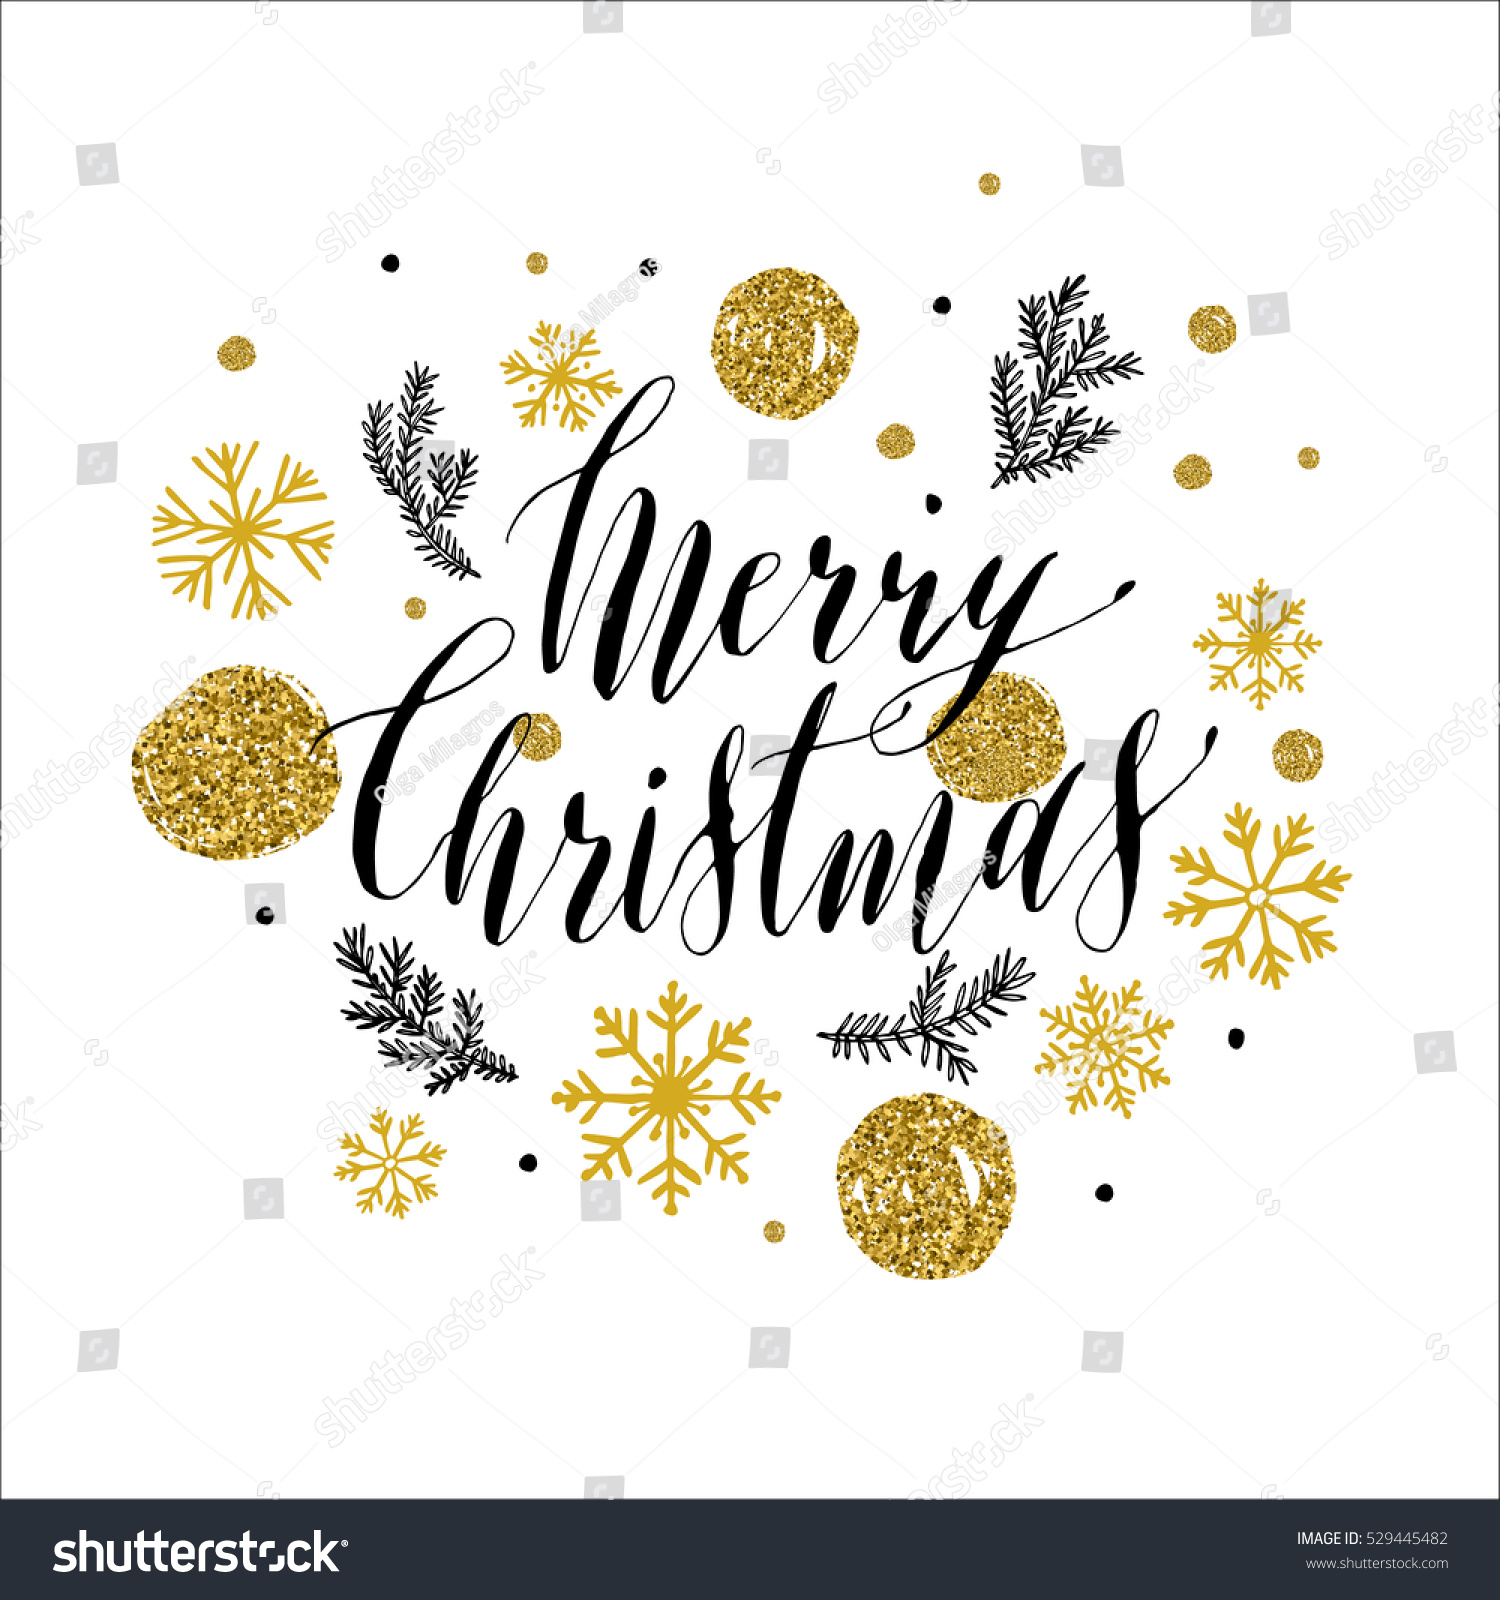 calligraphic merry christmas with snowflakes hand drawn style post card